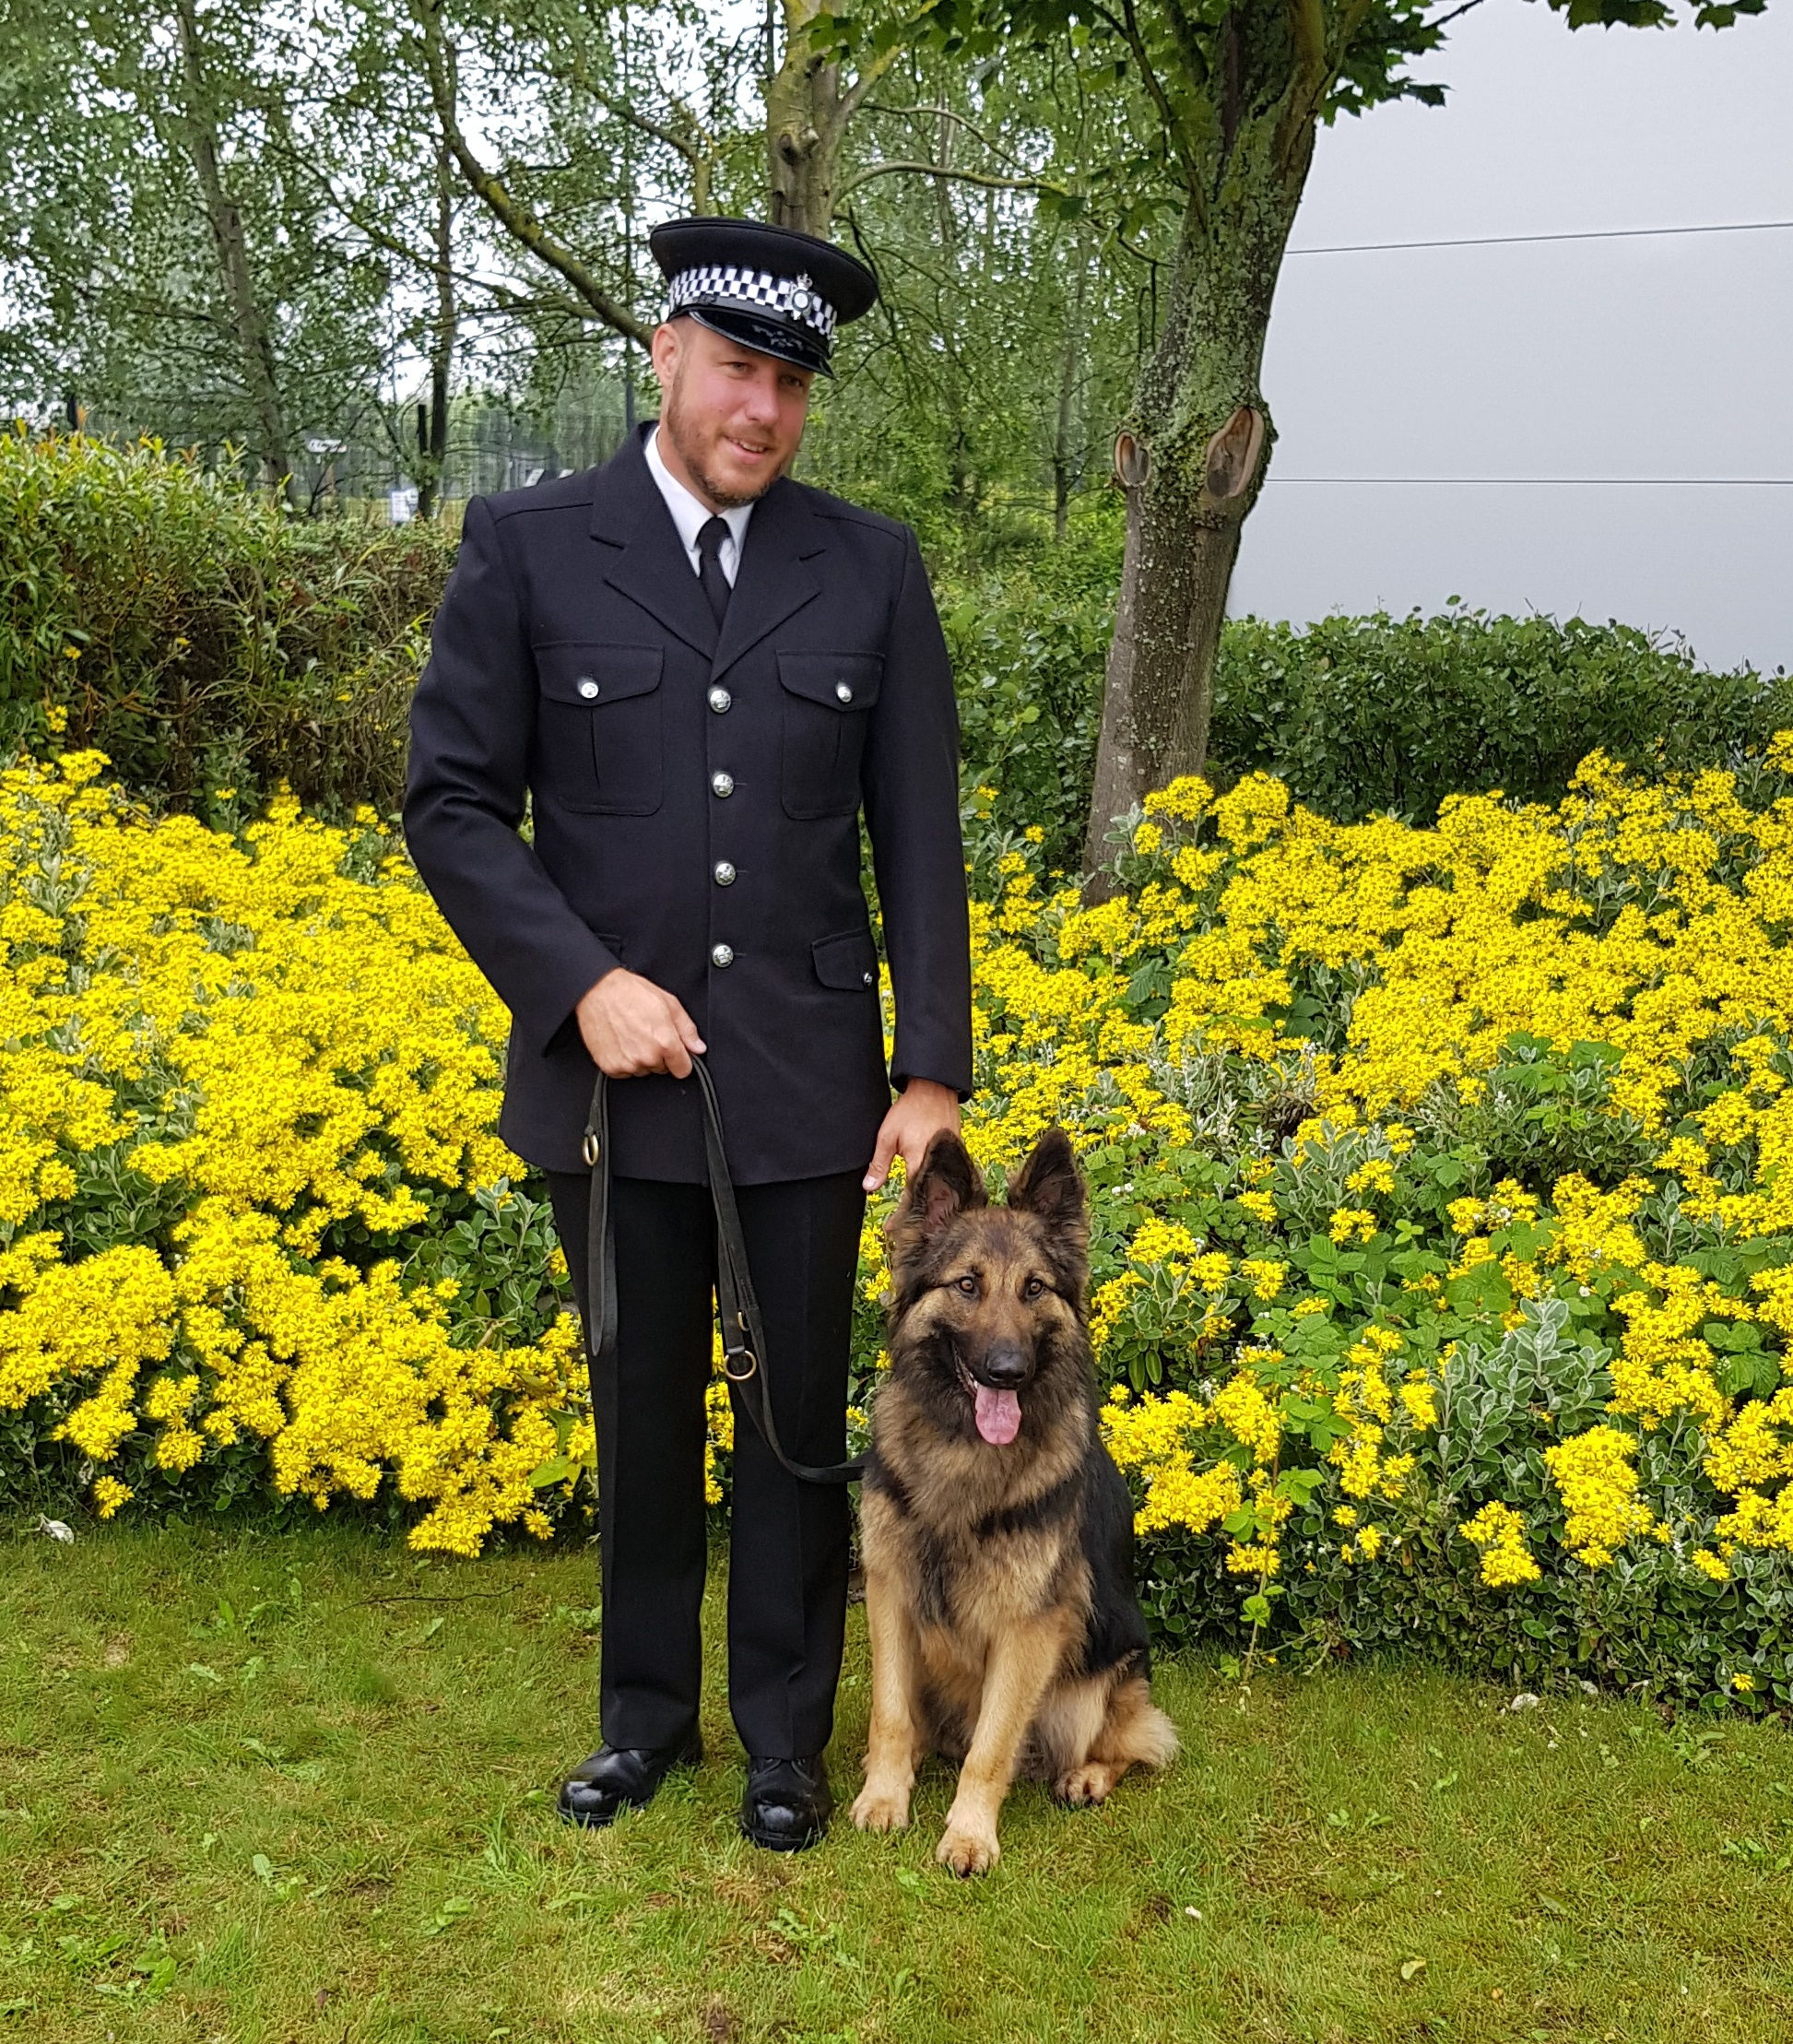 PC Aris and his dog Bear